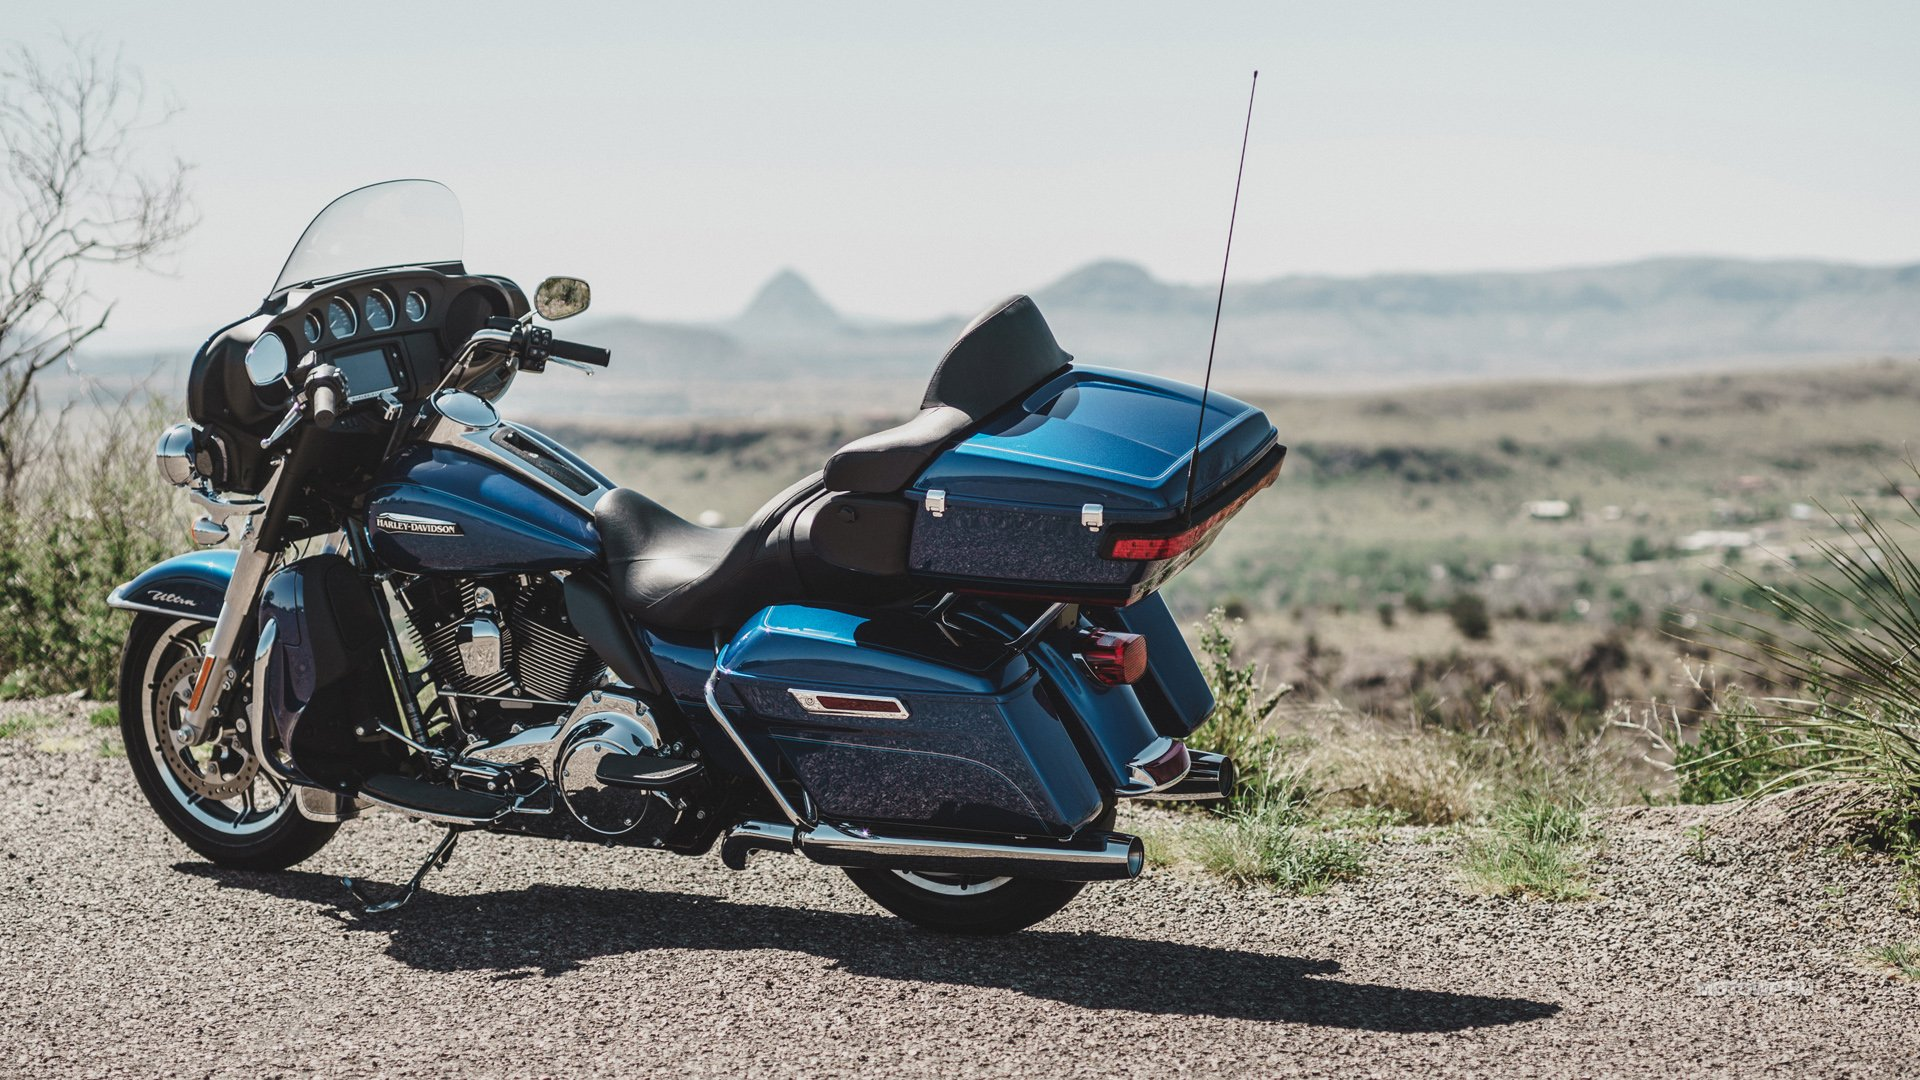 1920x1080 - Harley-Davidson Electra Glide Ultra Classic Wallpapers 32